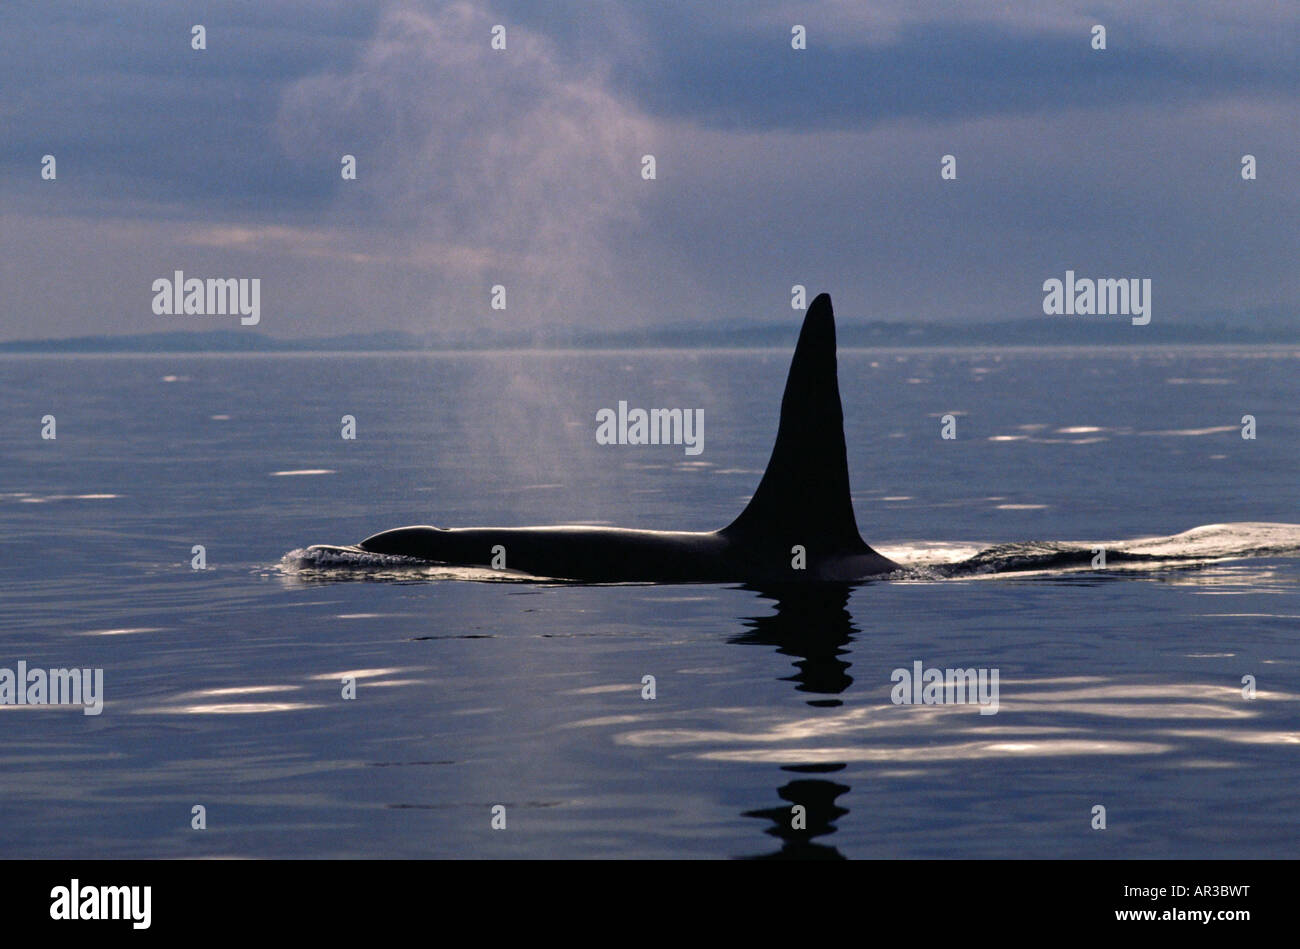 A killer whale surfacing Photo Stock